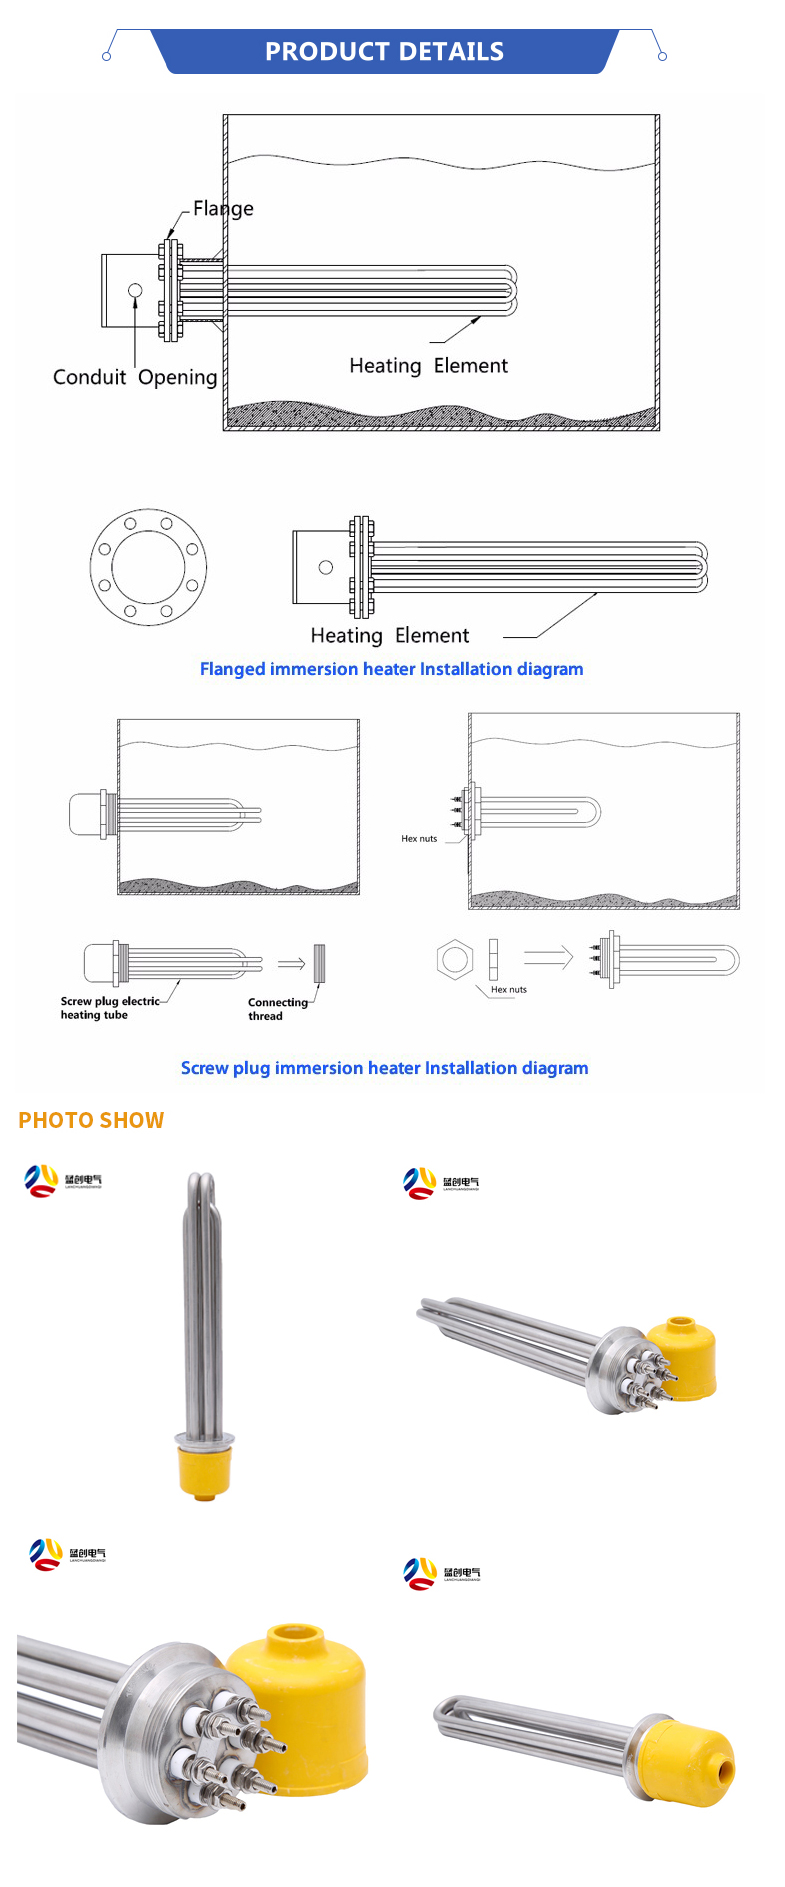 10kw 110v Electric Immersion Water Heater With Flange Buy 10 Kw Furnace Wiring Diagram